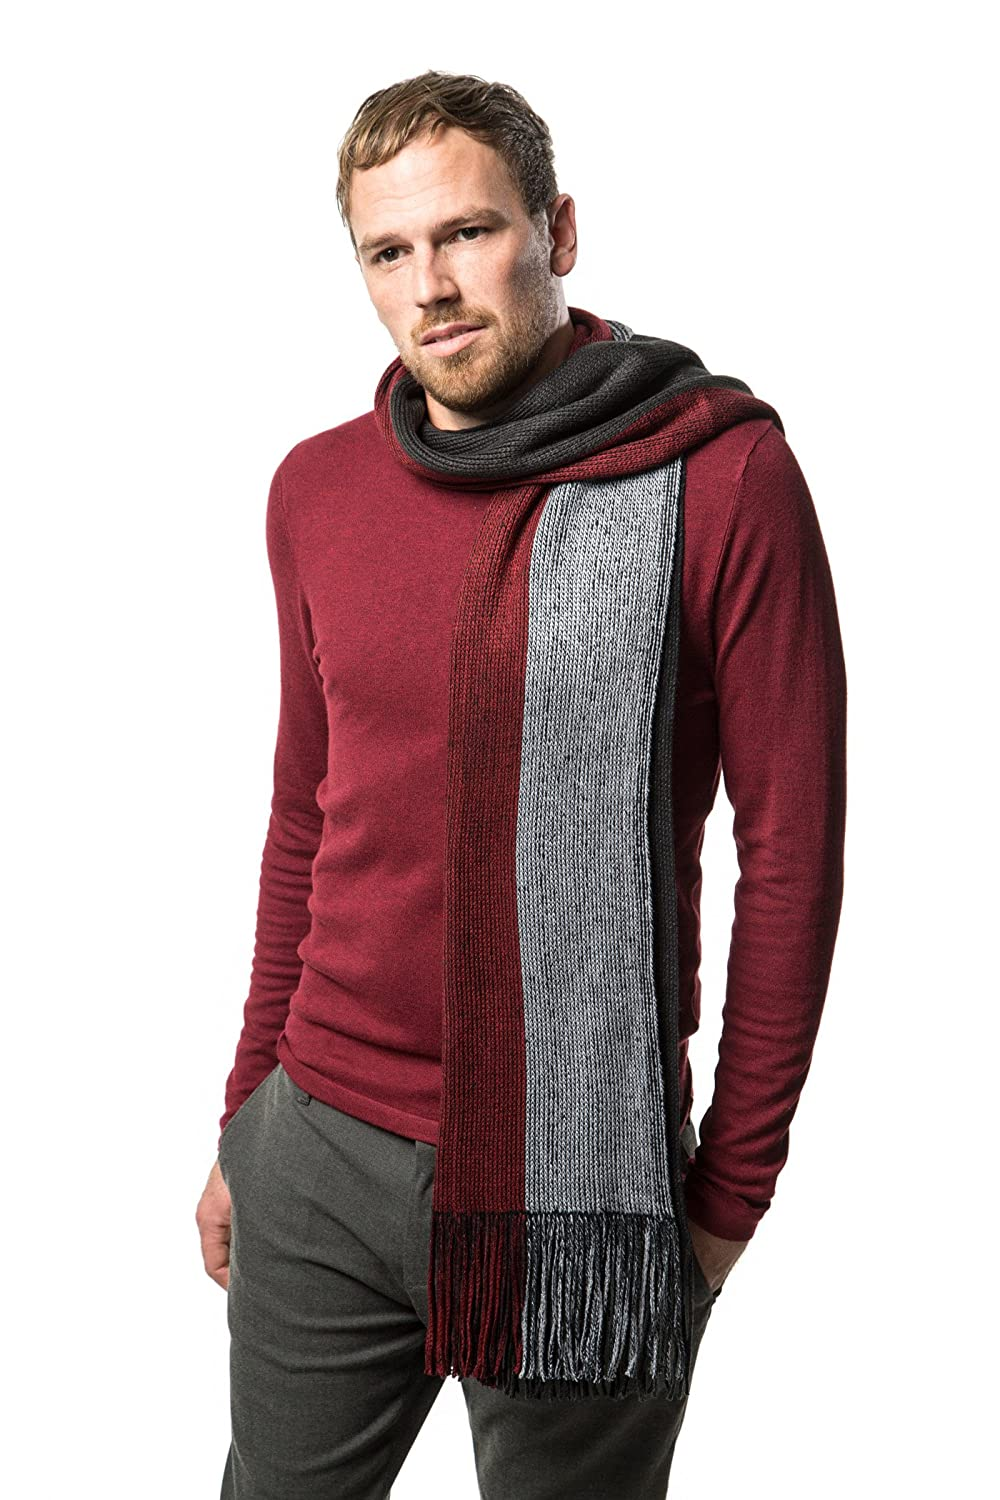 Mens Scarf, Knit Striped Long Scarf, Winter Fashion Scarf In An Elegant Gift Box MKS095-1-MUG_FIX1